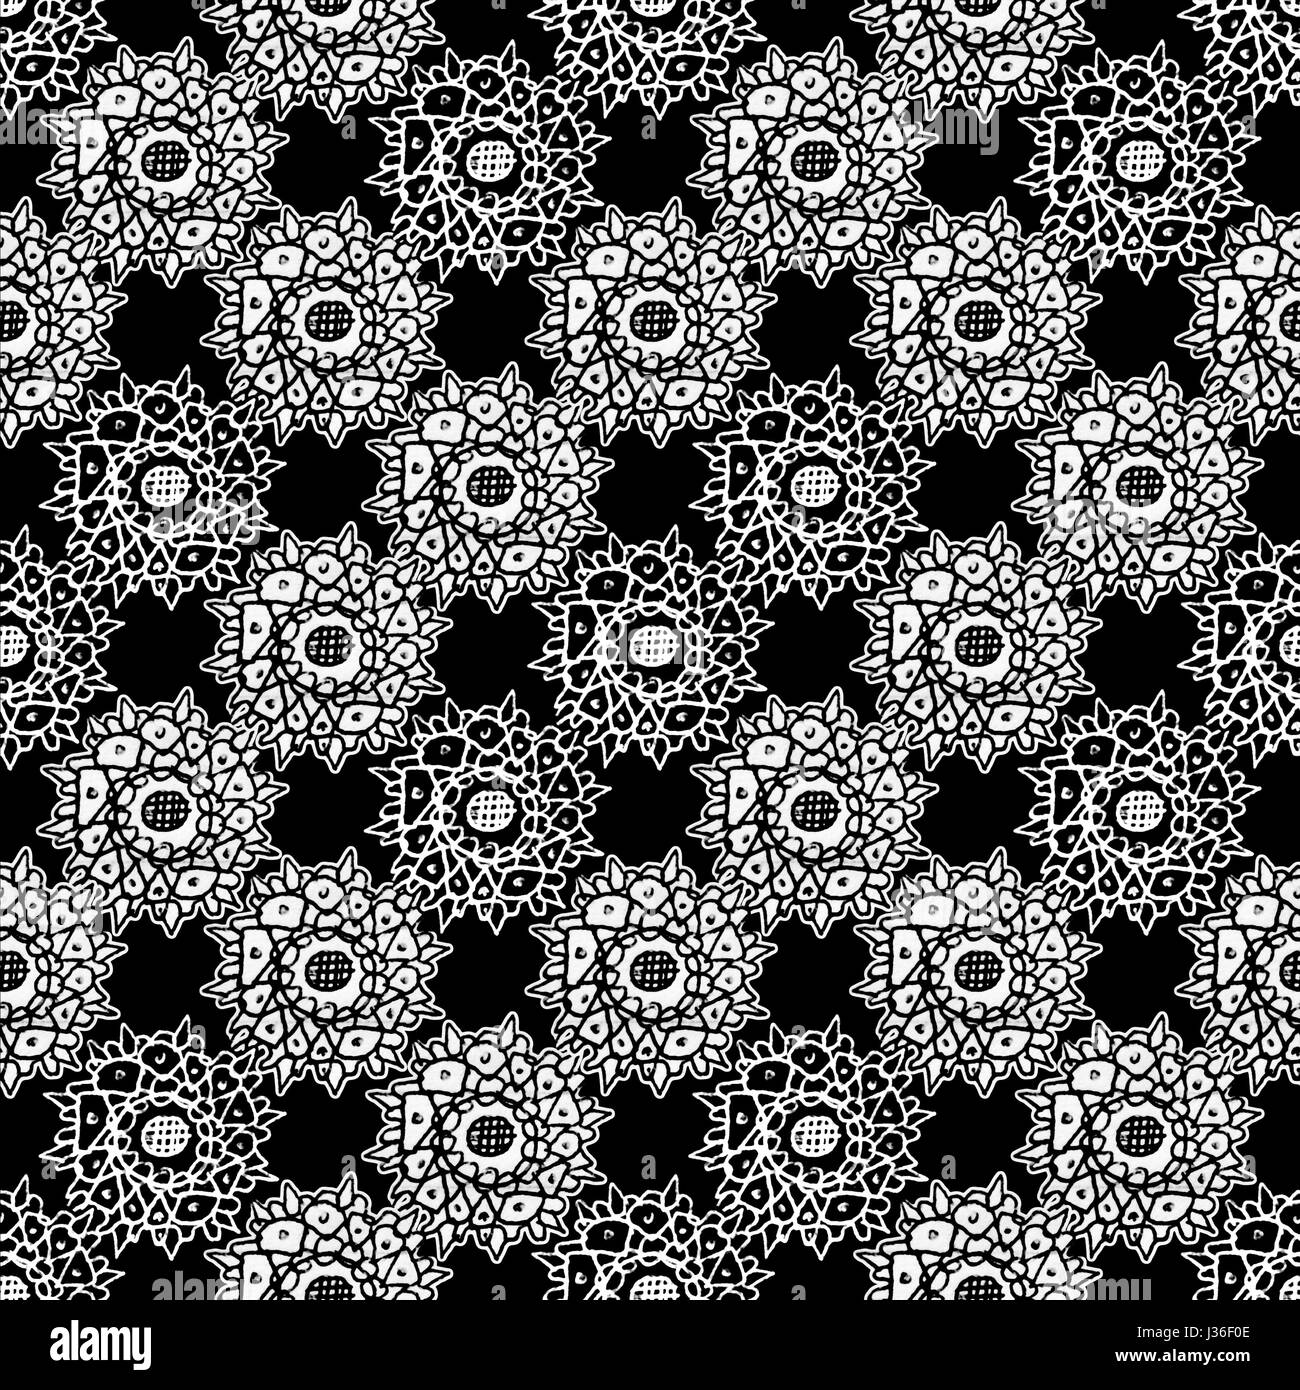 Mixed media collage technique stars motif hand draw graphic ornate seamless pattern design in black and white colors Stock Photo